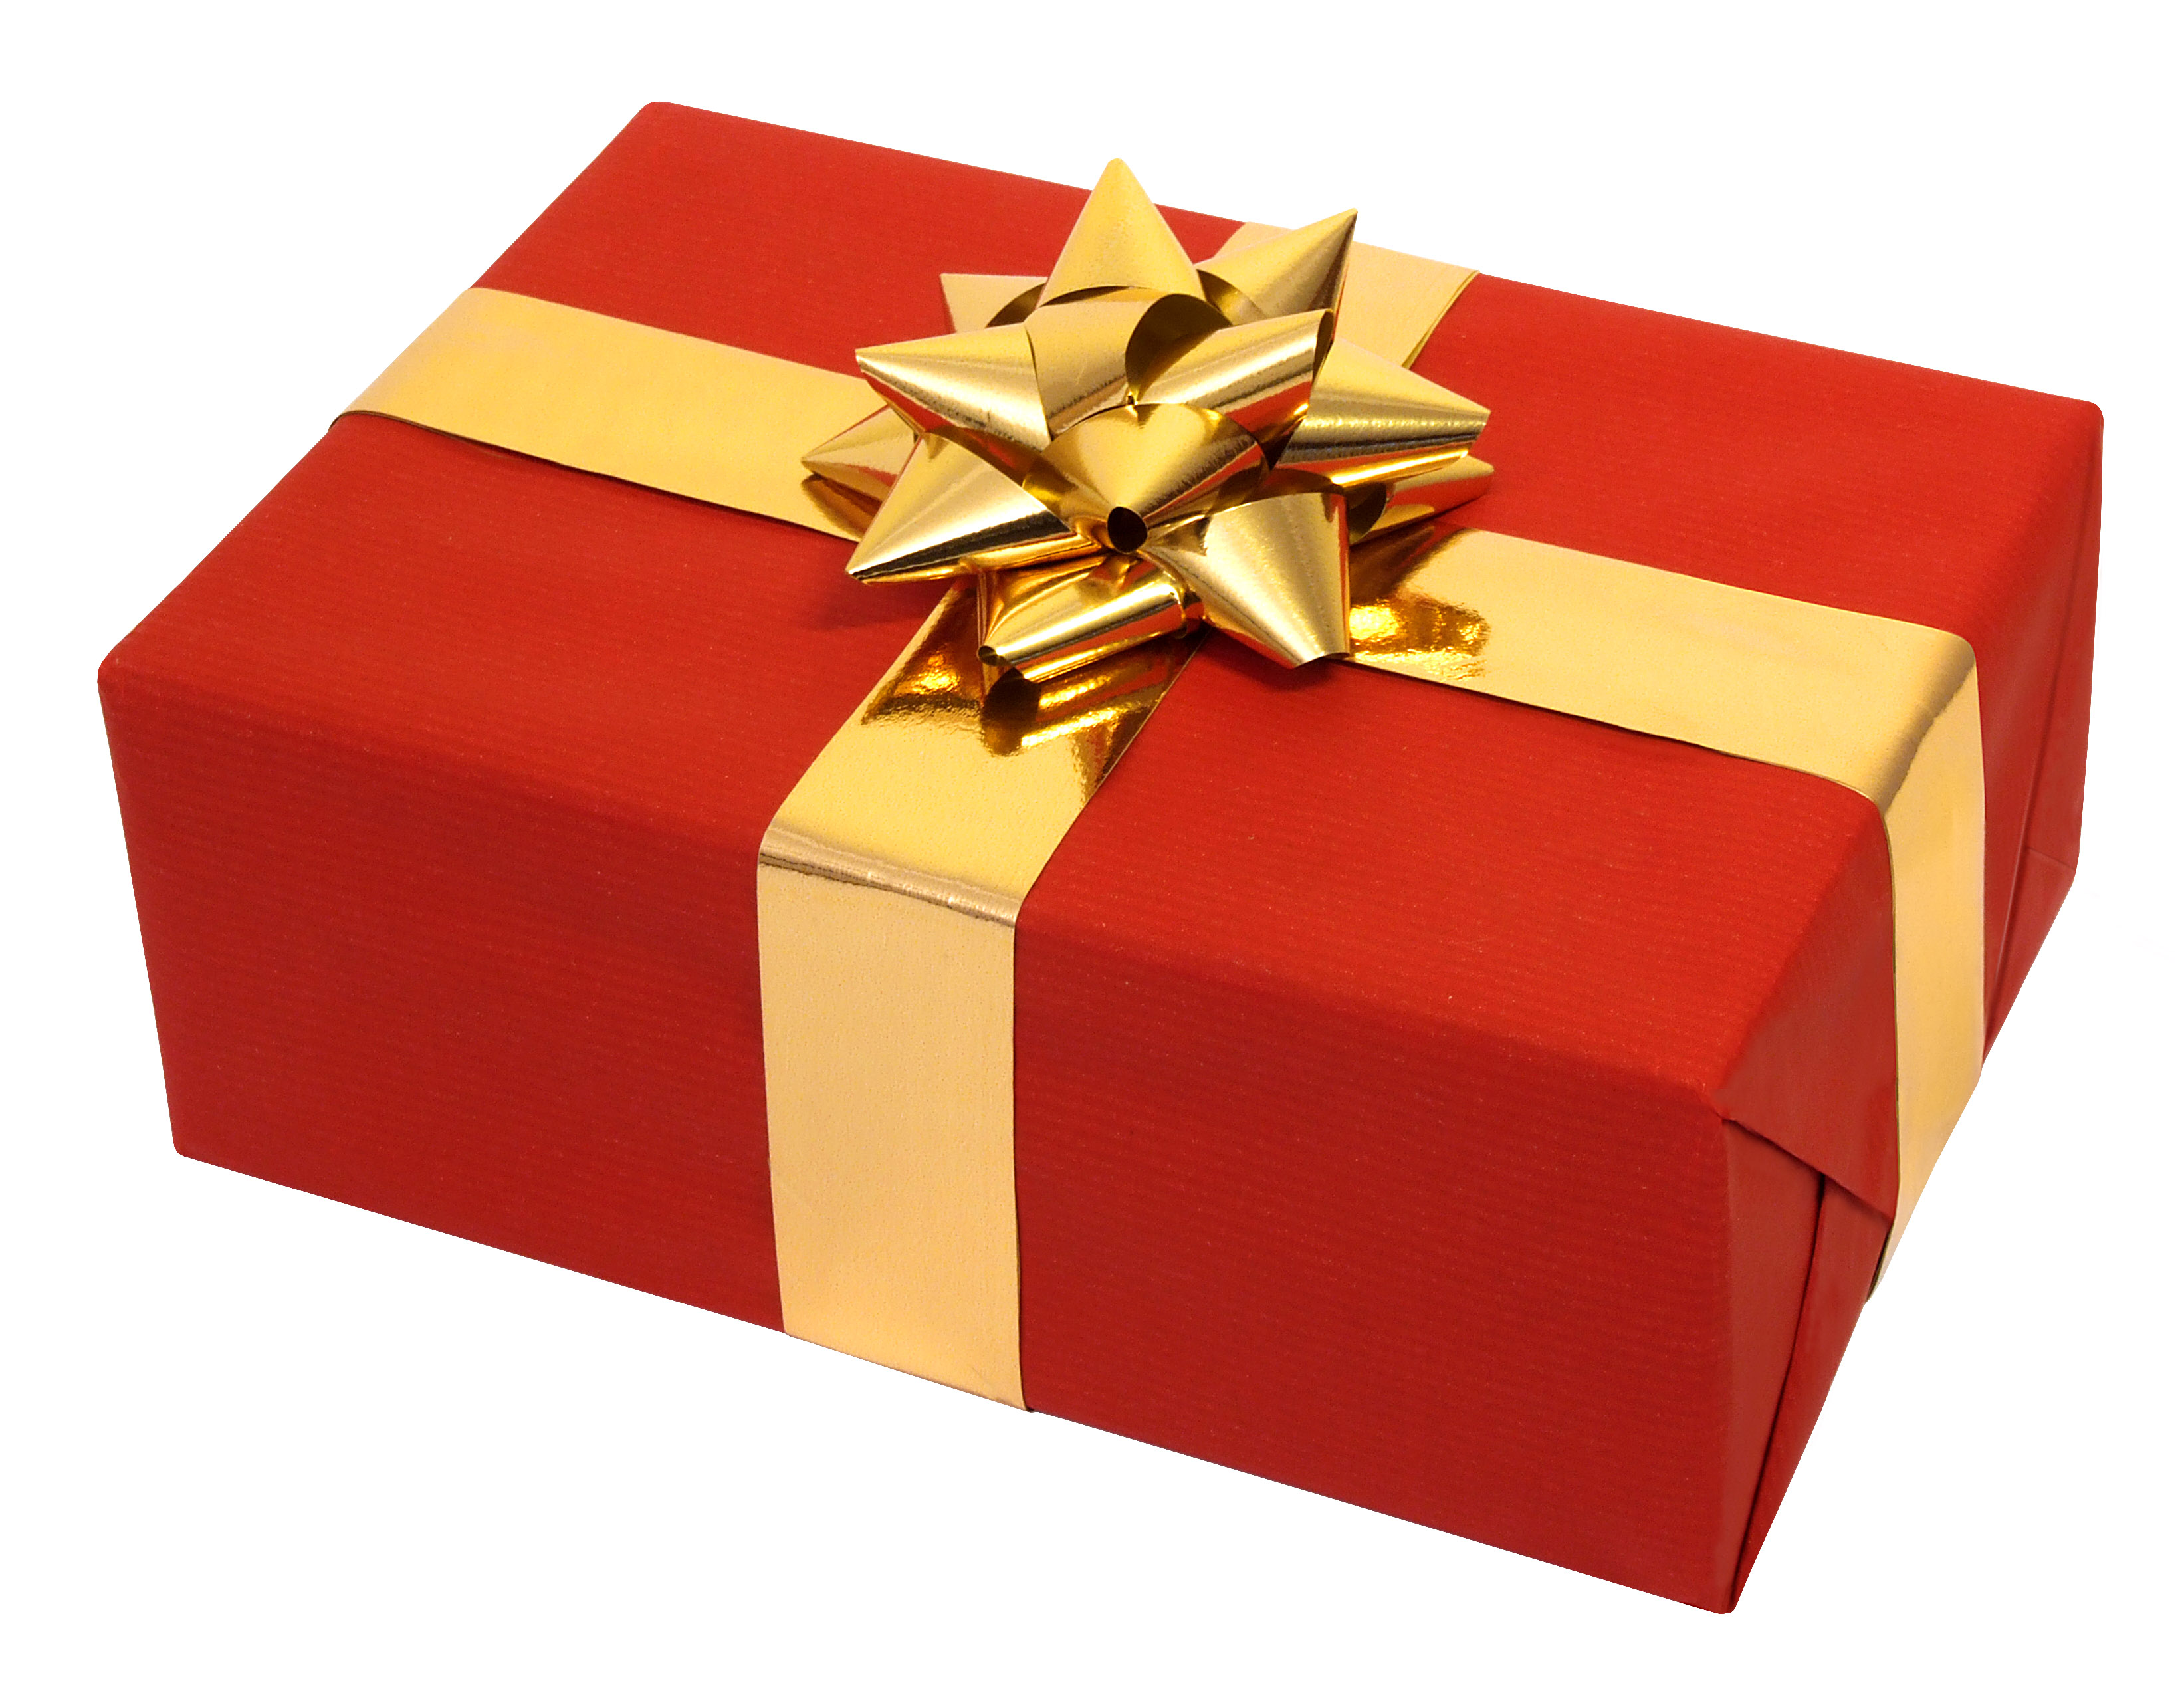 Where To Buy Corporate Gifts?